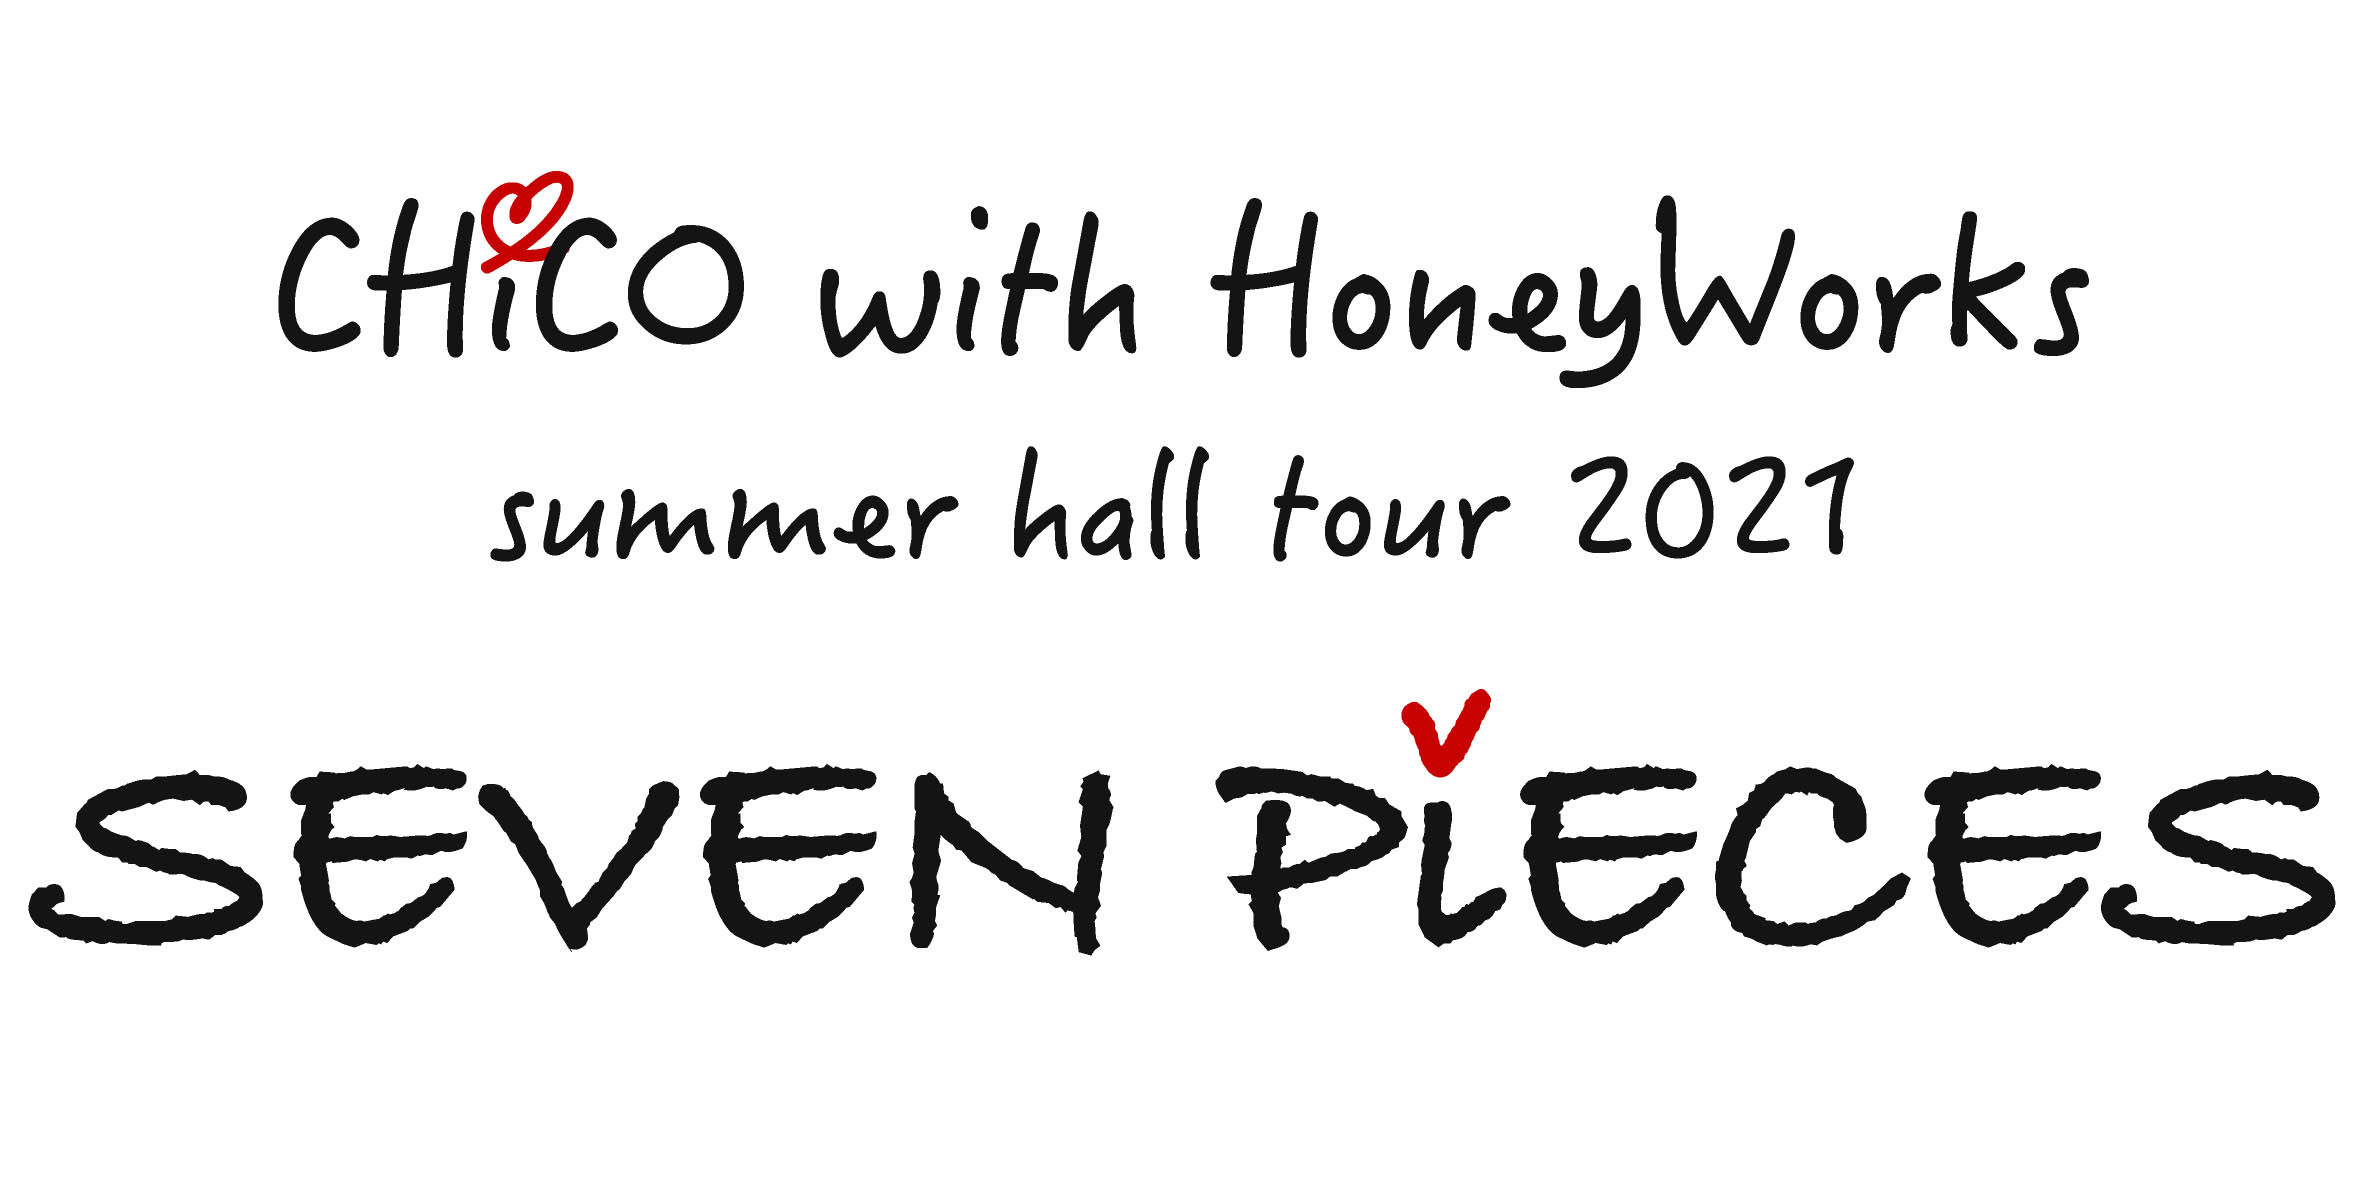 『CHiCO with HoneyWorks summer hall tour 2021 SEVEN PiECES』ロゴ